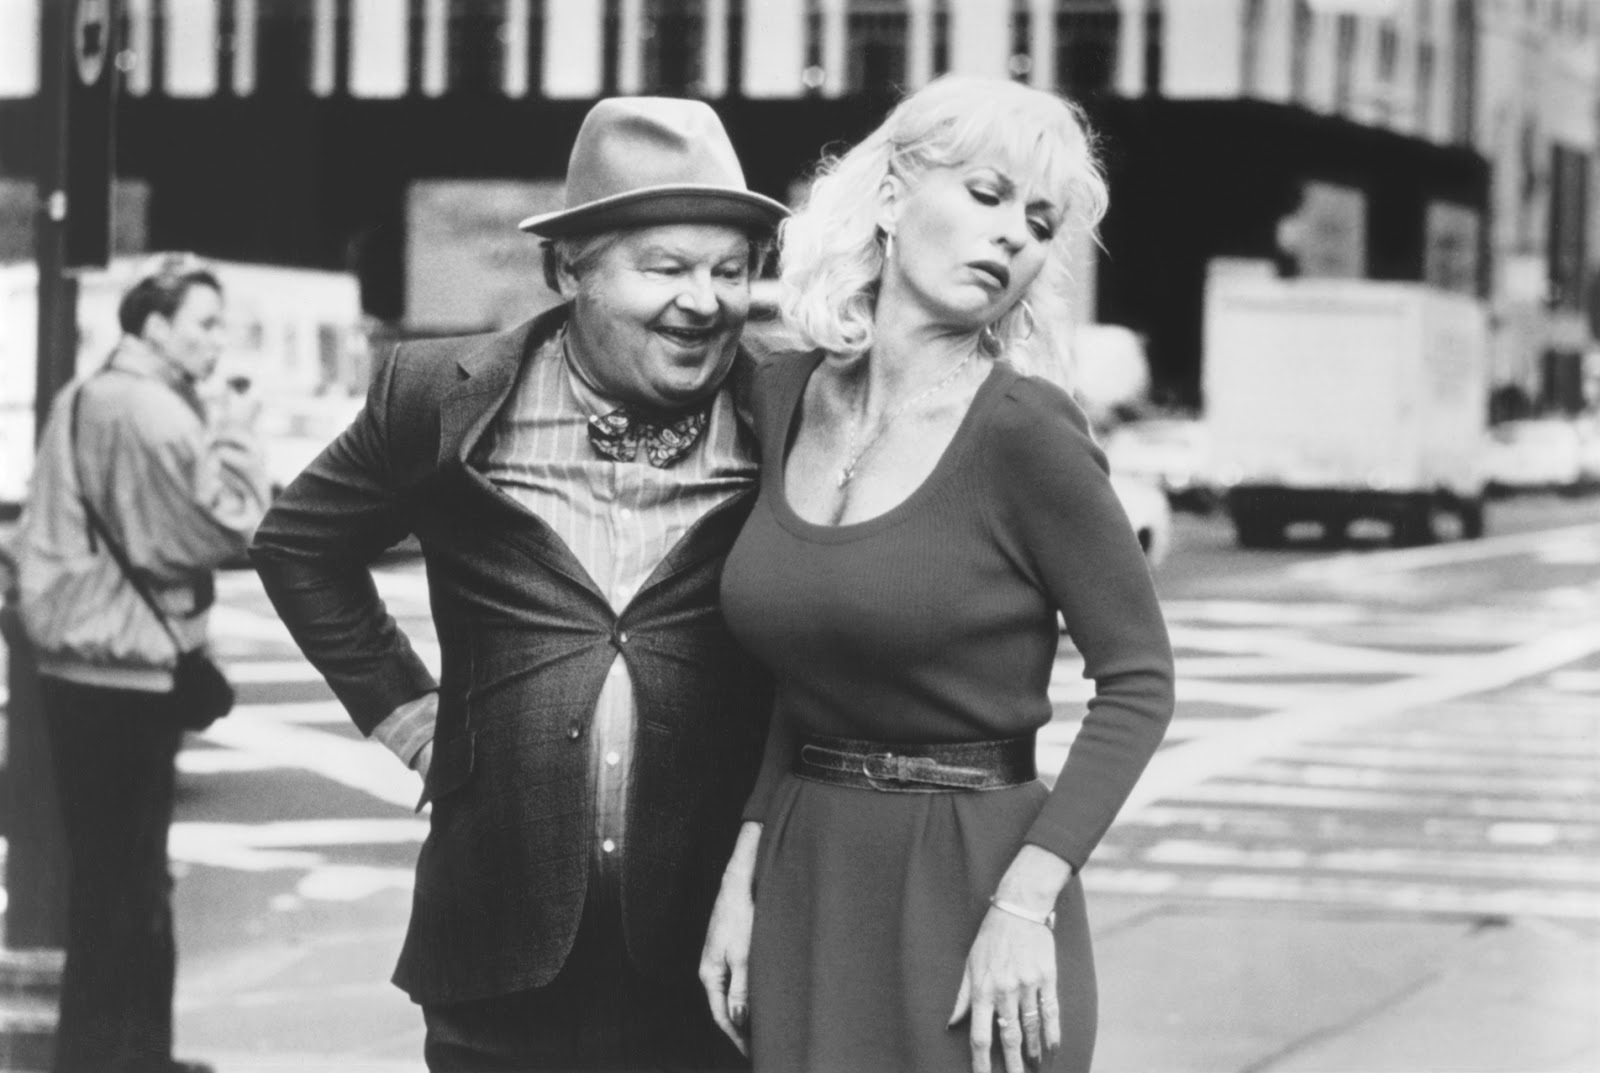 A black and white picture of Benny Hill and a woman